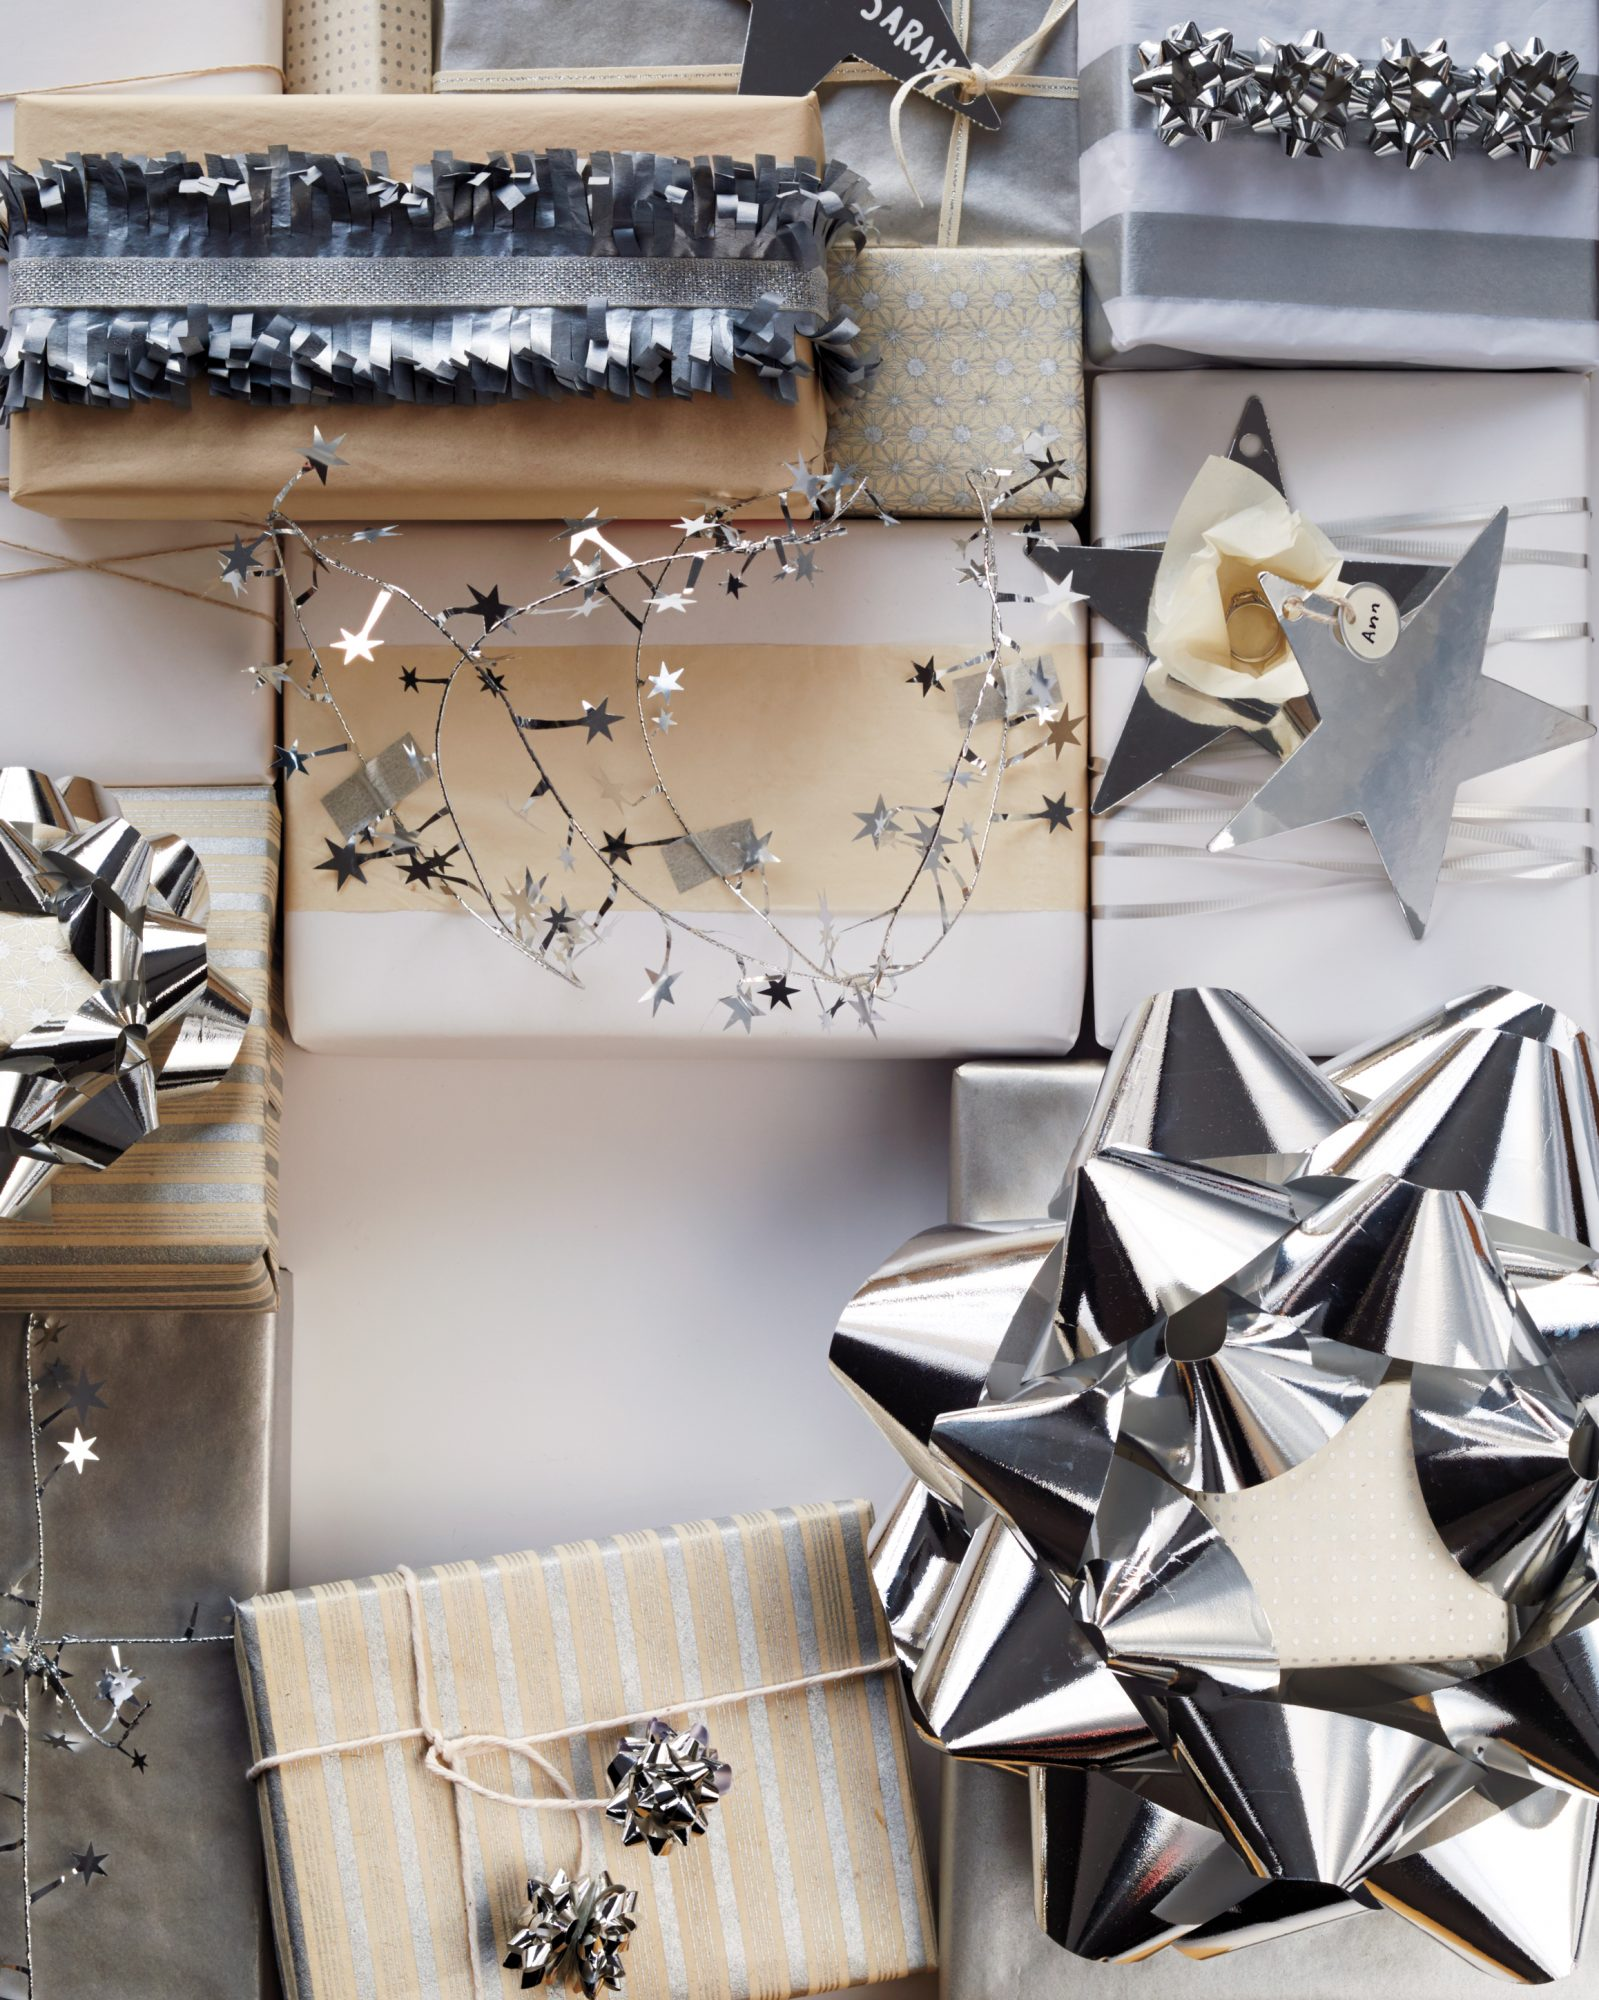 silver gift-wrapping and toppers